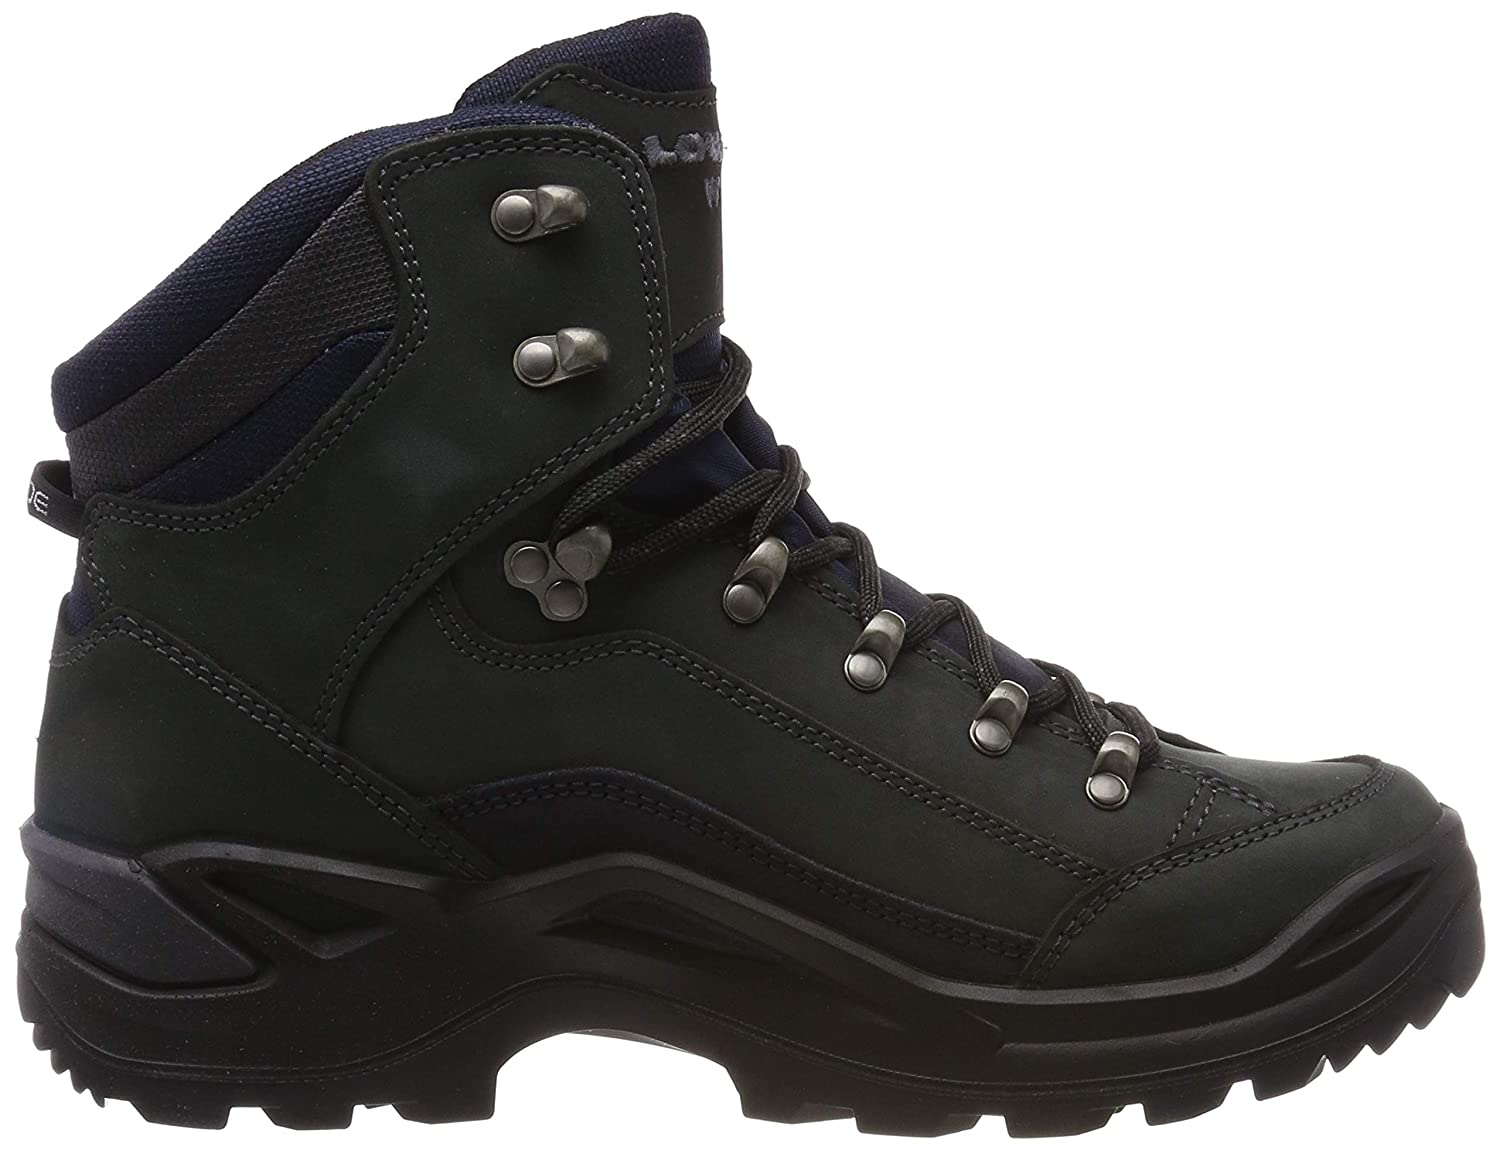 Lowa Mens Renegade GTX Mid Hiking Boot